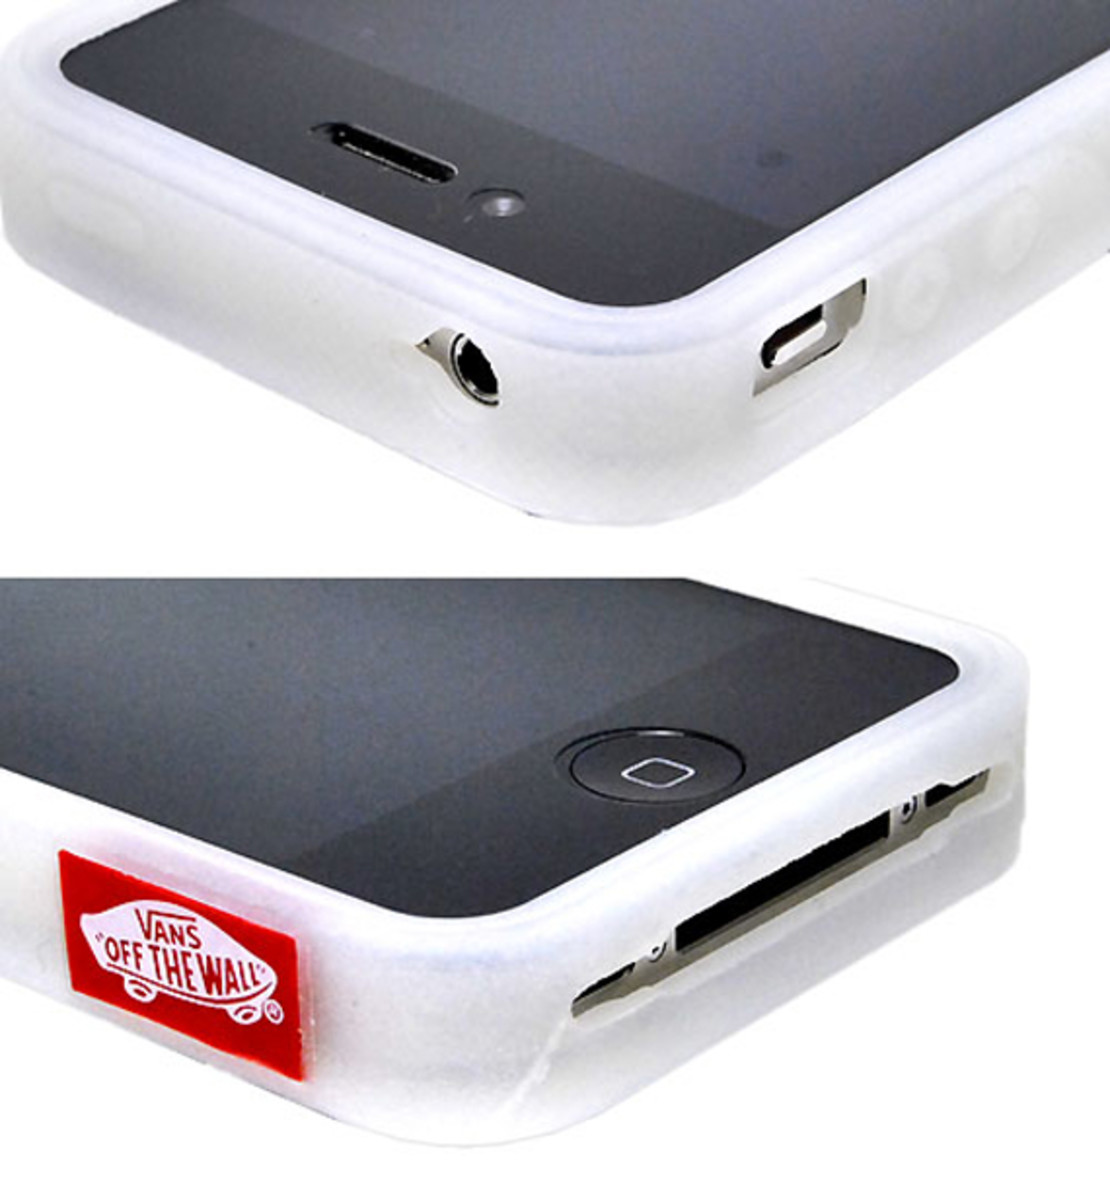 vans-rubber-waffle-sole-case-for-apple-iphone-4-glow-in-the-dark-edition-05